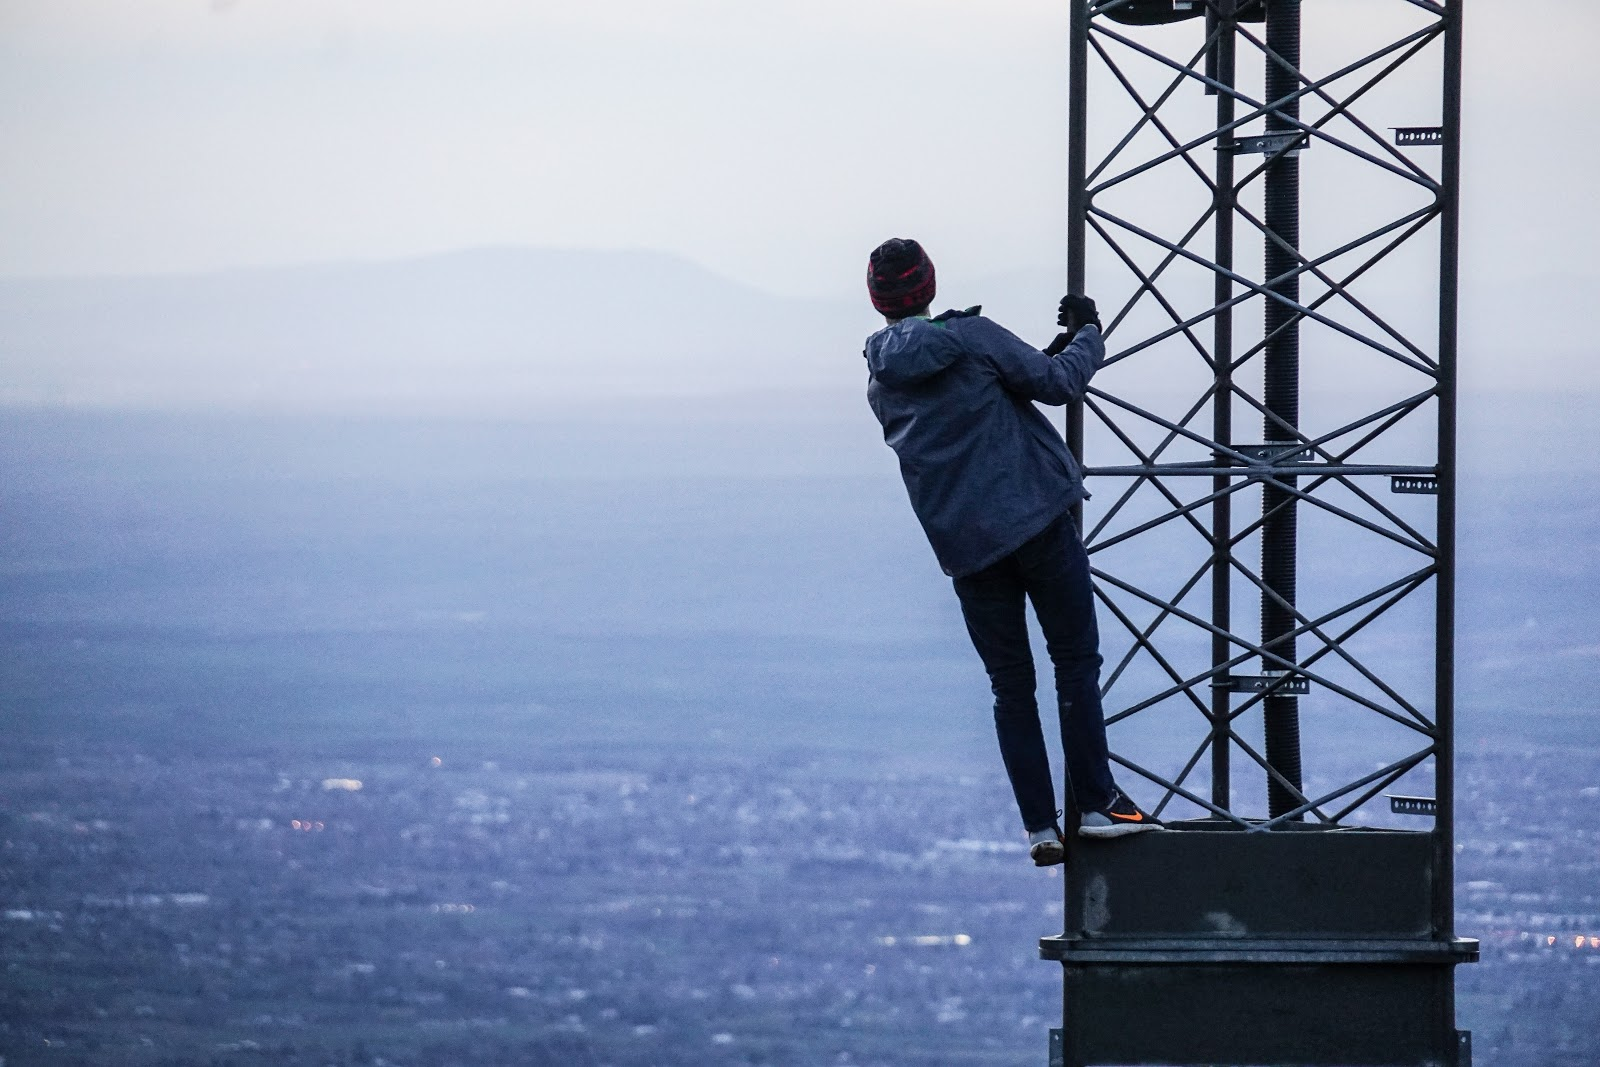 man on cell tower overlooking city dangerous